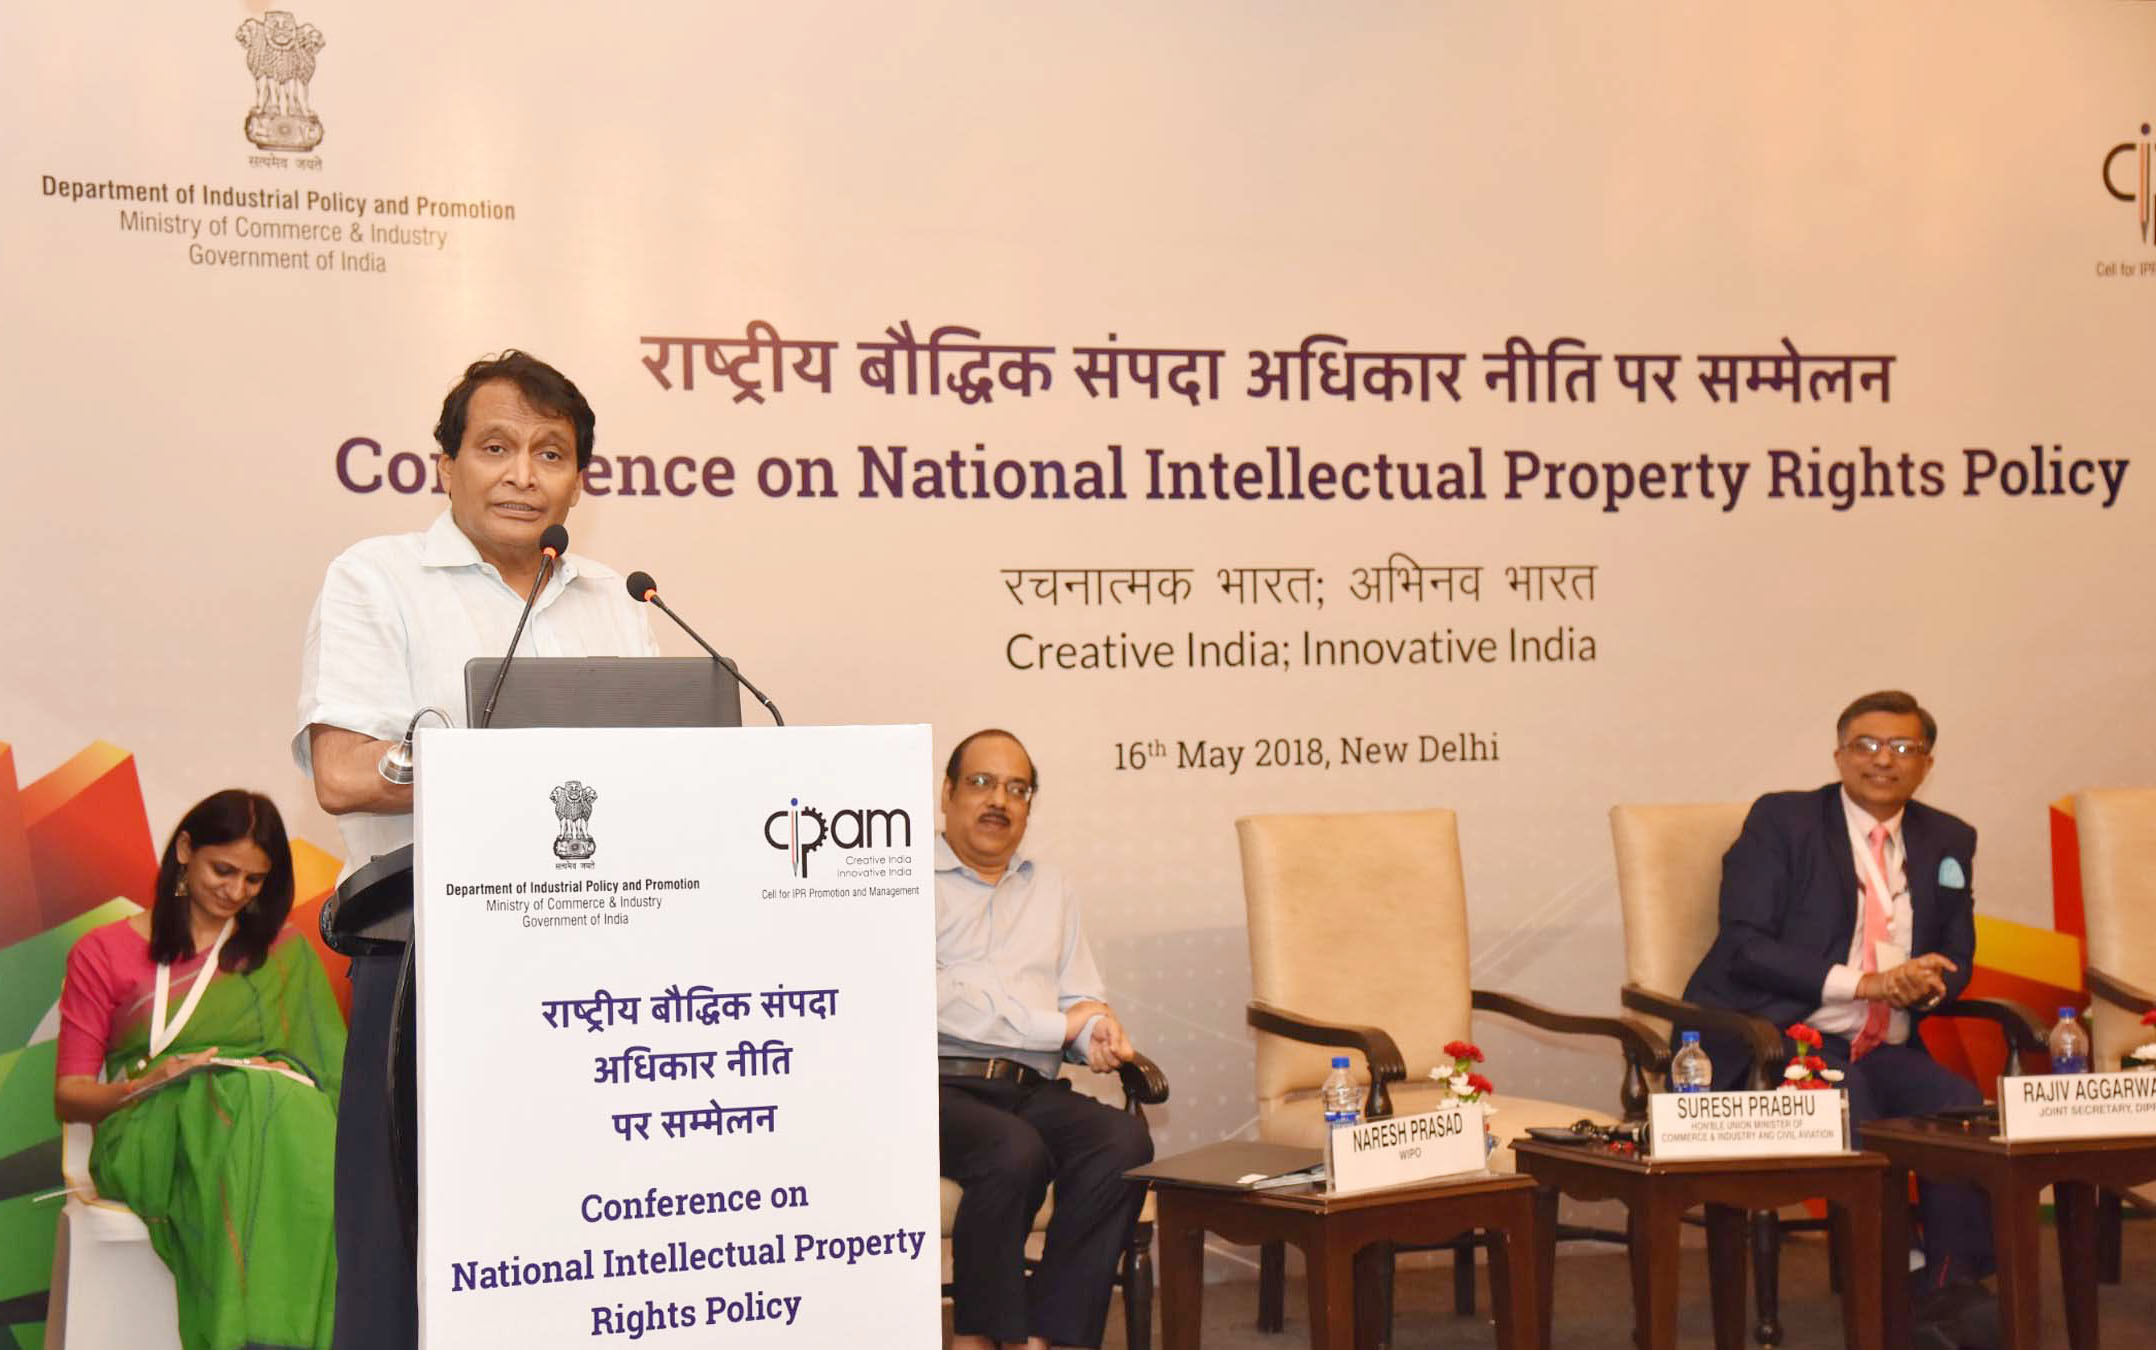 The Union Minister for Commerce & Industry and Civil Aviation, Shri Suresh Prabhakar Prabhu addressing the Conference on National IPR Policy, in New Delhi on May 16, 2018.